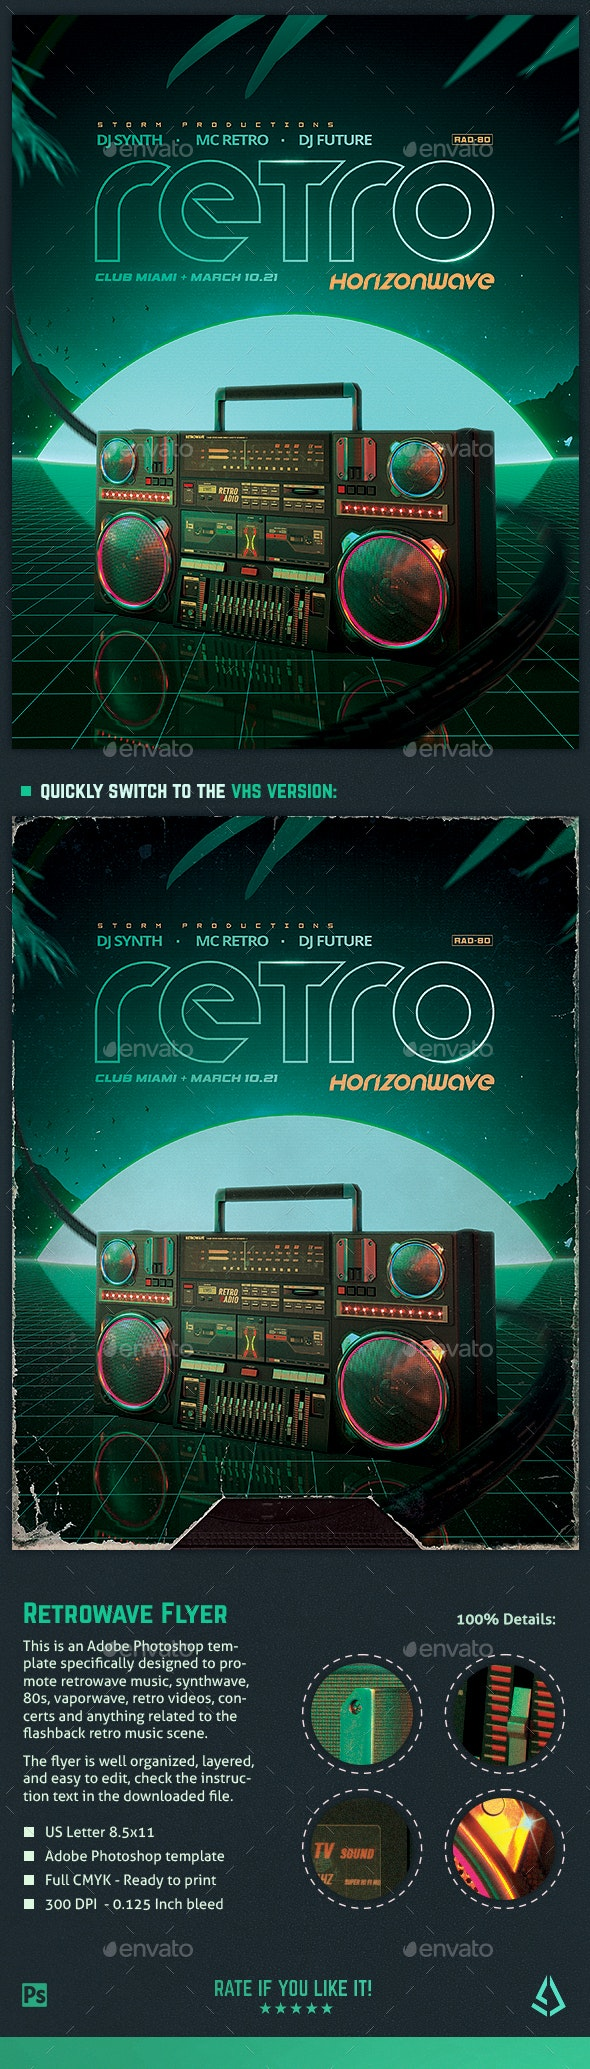 Retrowave Flyer 80s Flashback Radio - Clubs & Parties Events